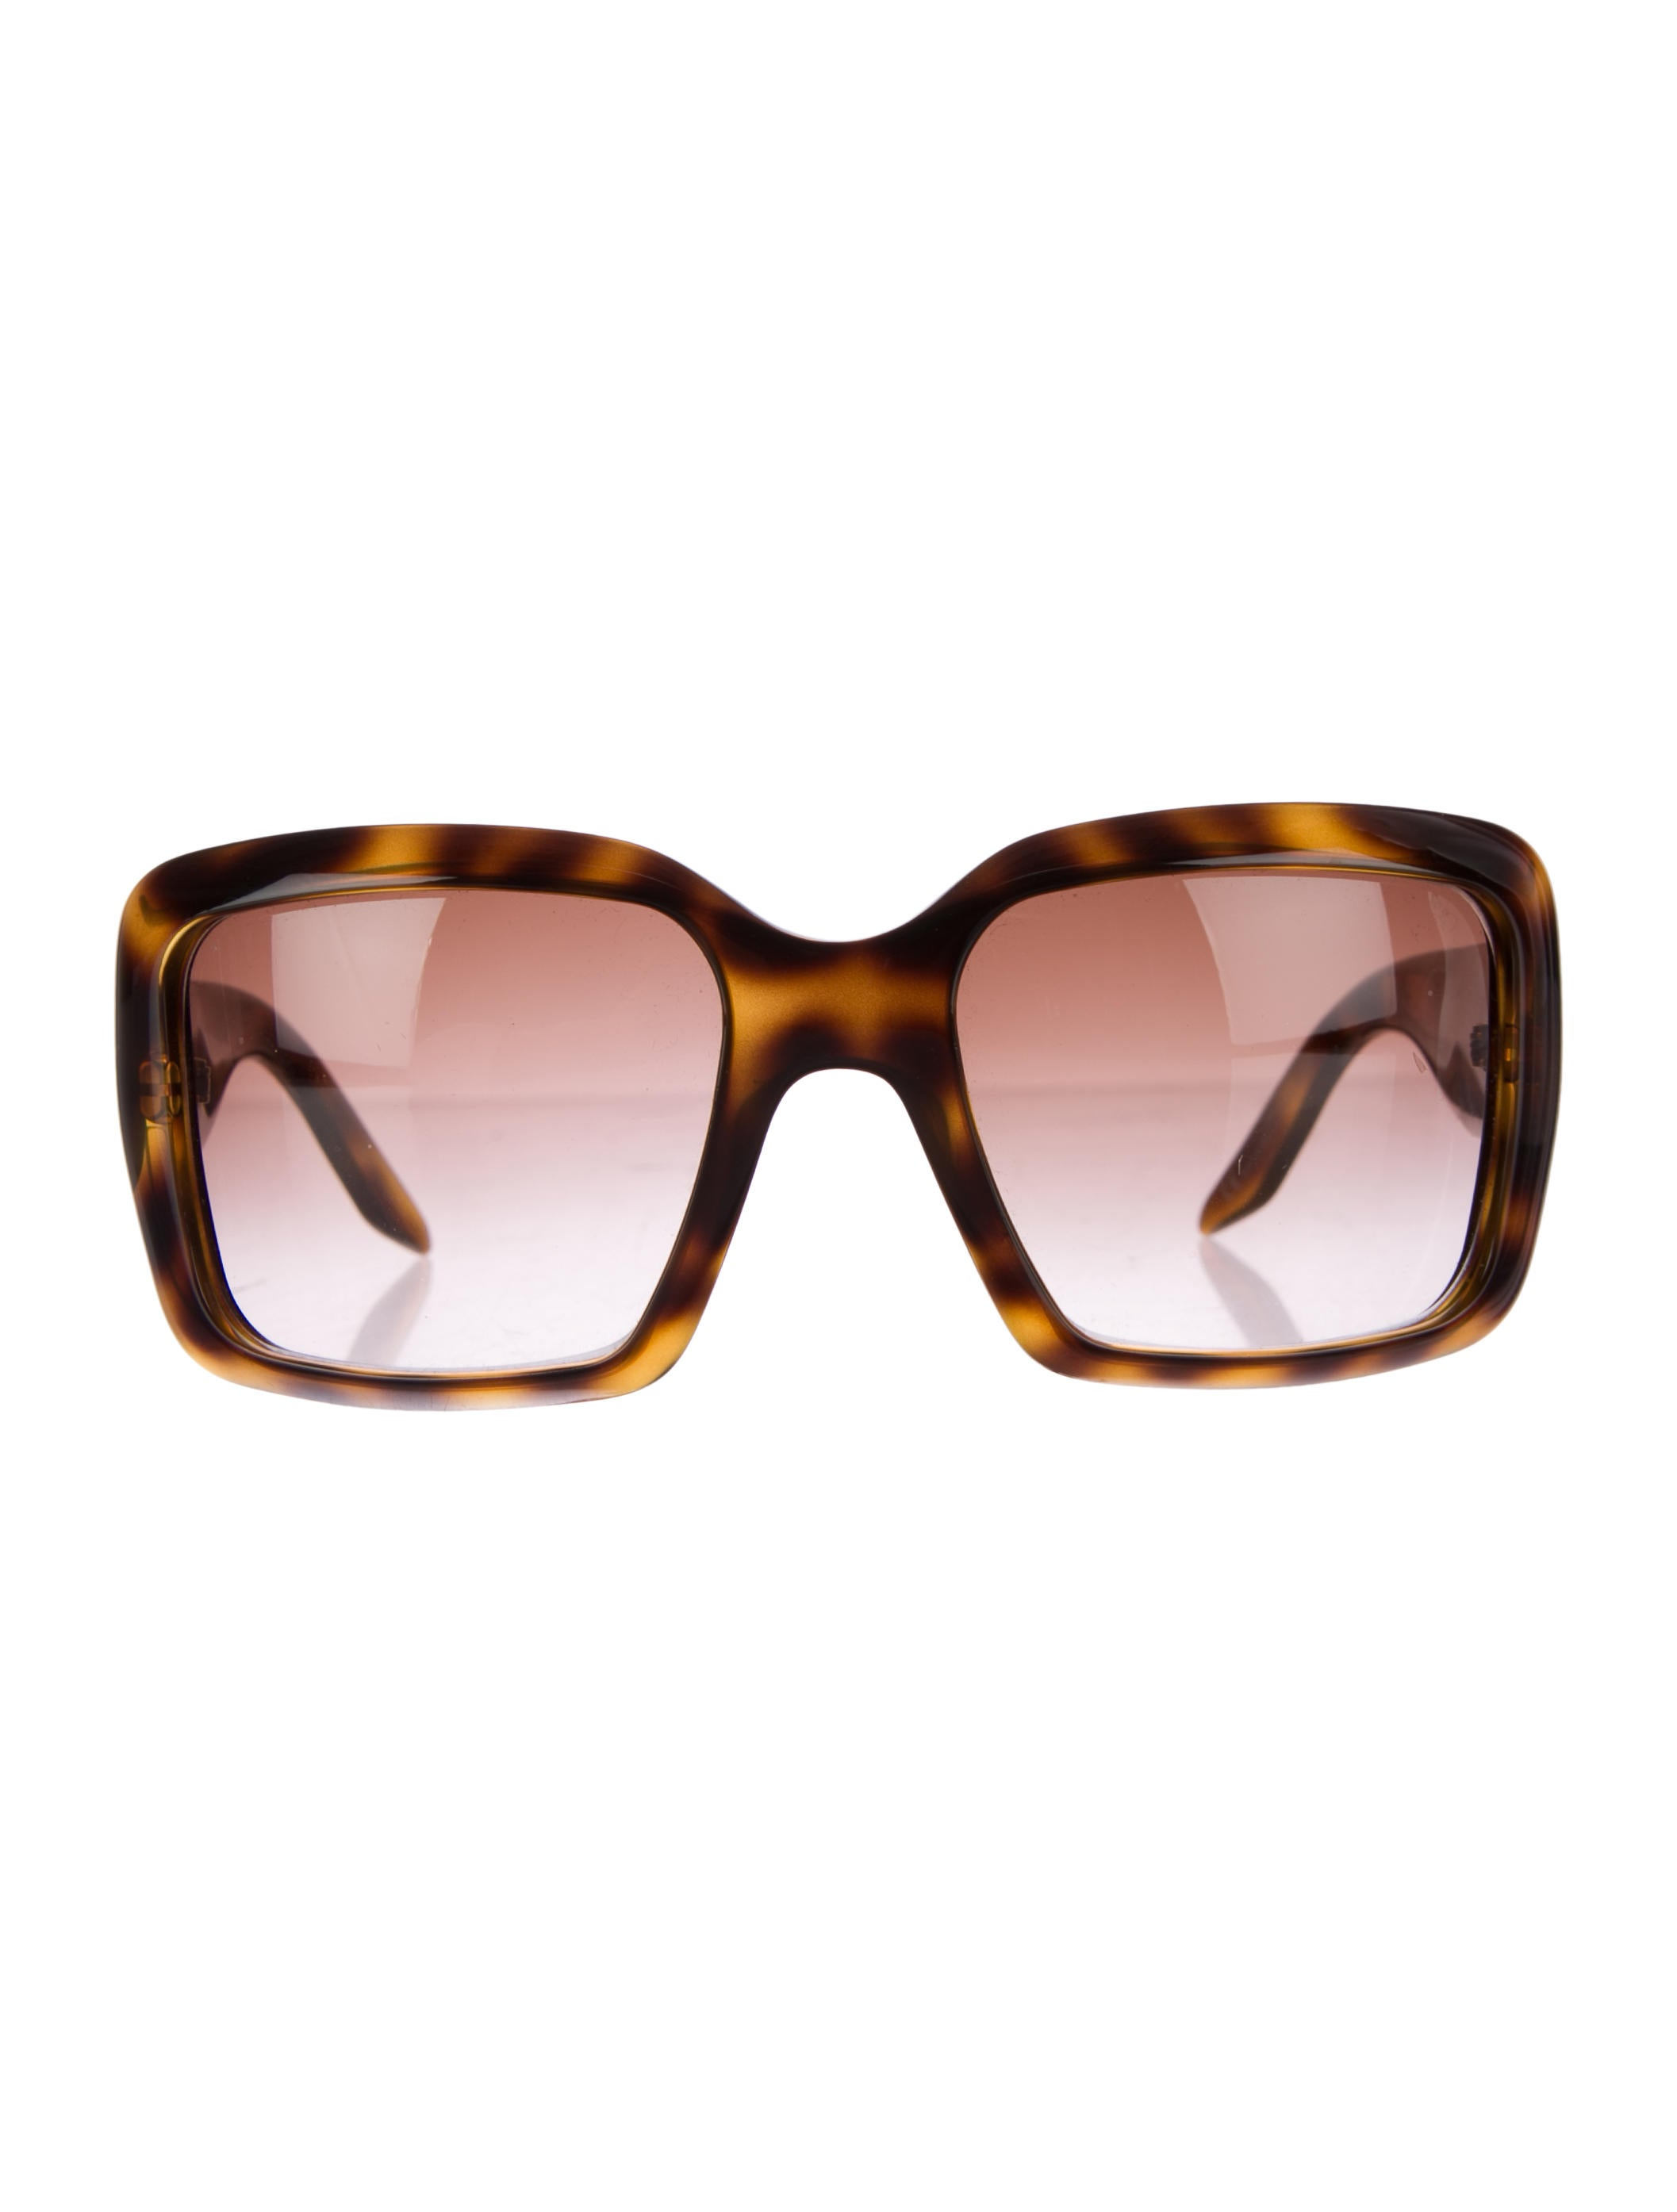 19bc2bed031b7 Christian Dior Sunglasses For Women